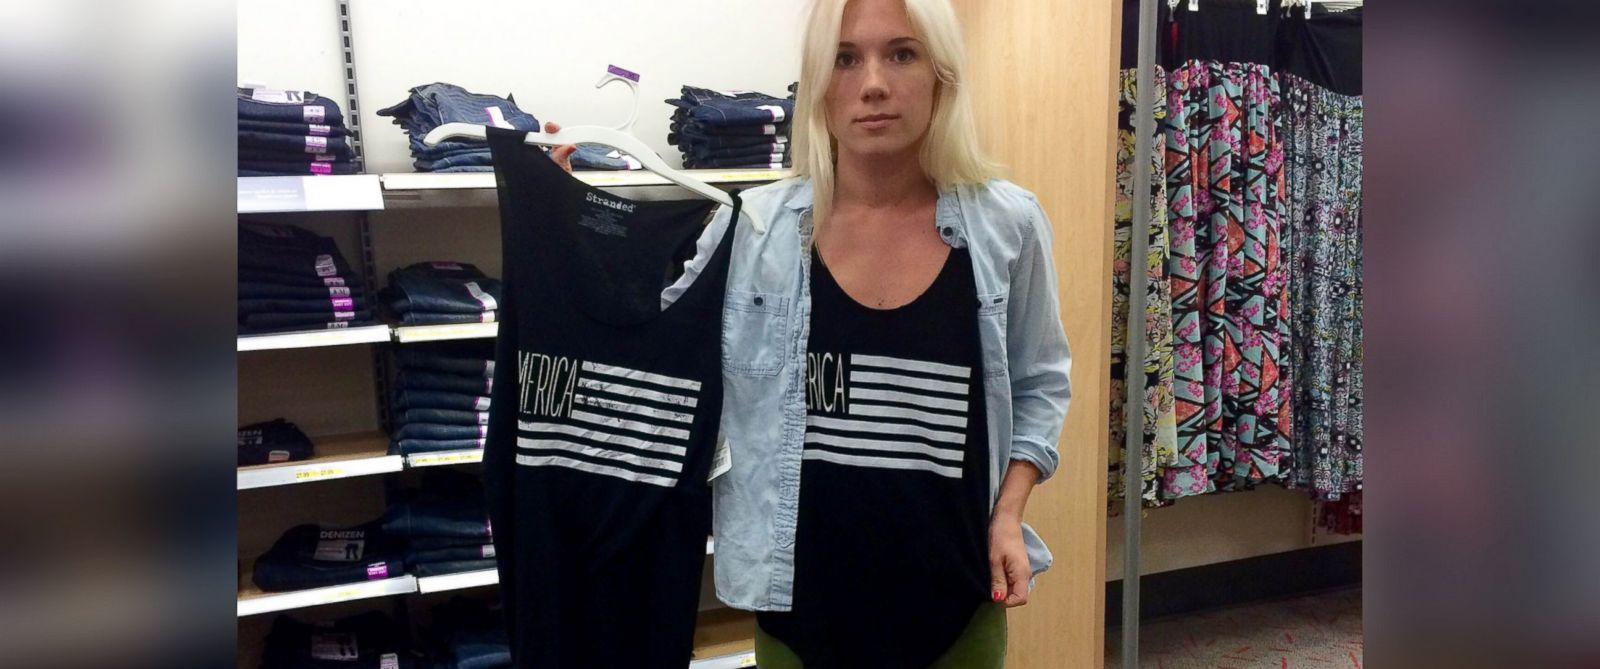 PHOTO: Melissa Lay was stunned when she reportedly found her design on a Target t-shirt.